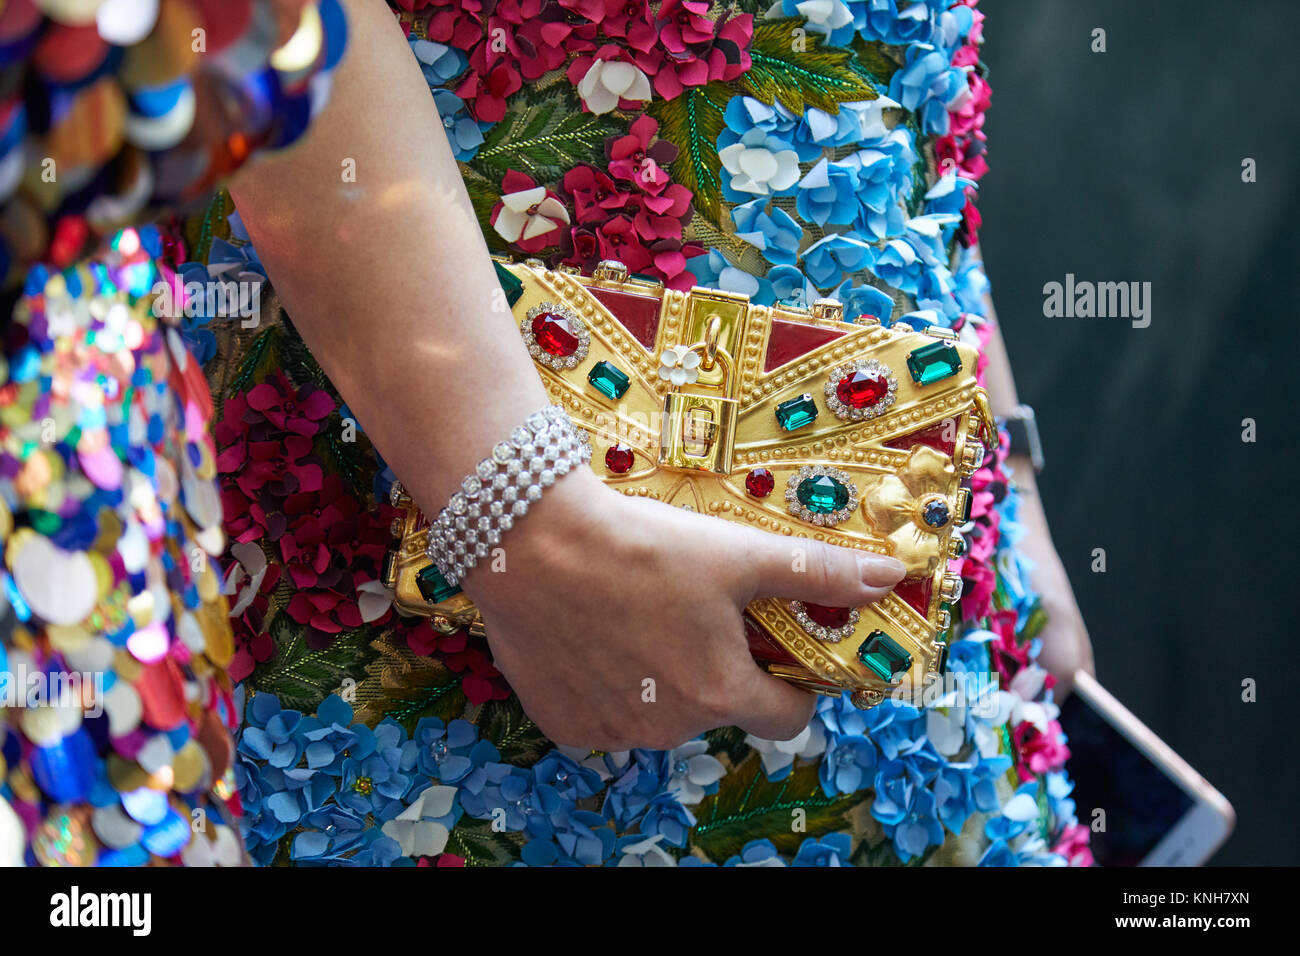 MILAN - SEPTEMBER 24: Woman with golden Dolce and Gabbana bag with jewels decoration and floral dress before Dolce - Stock Image